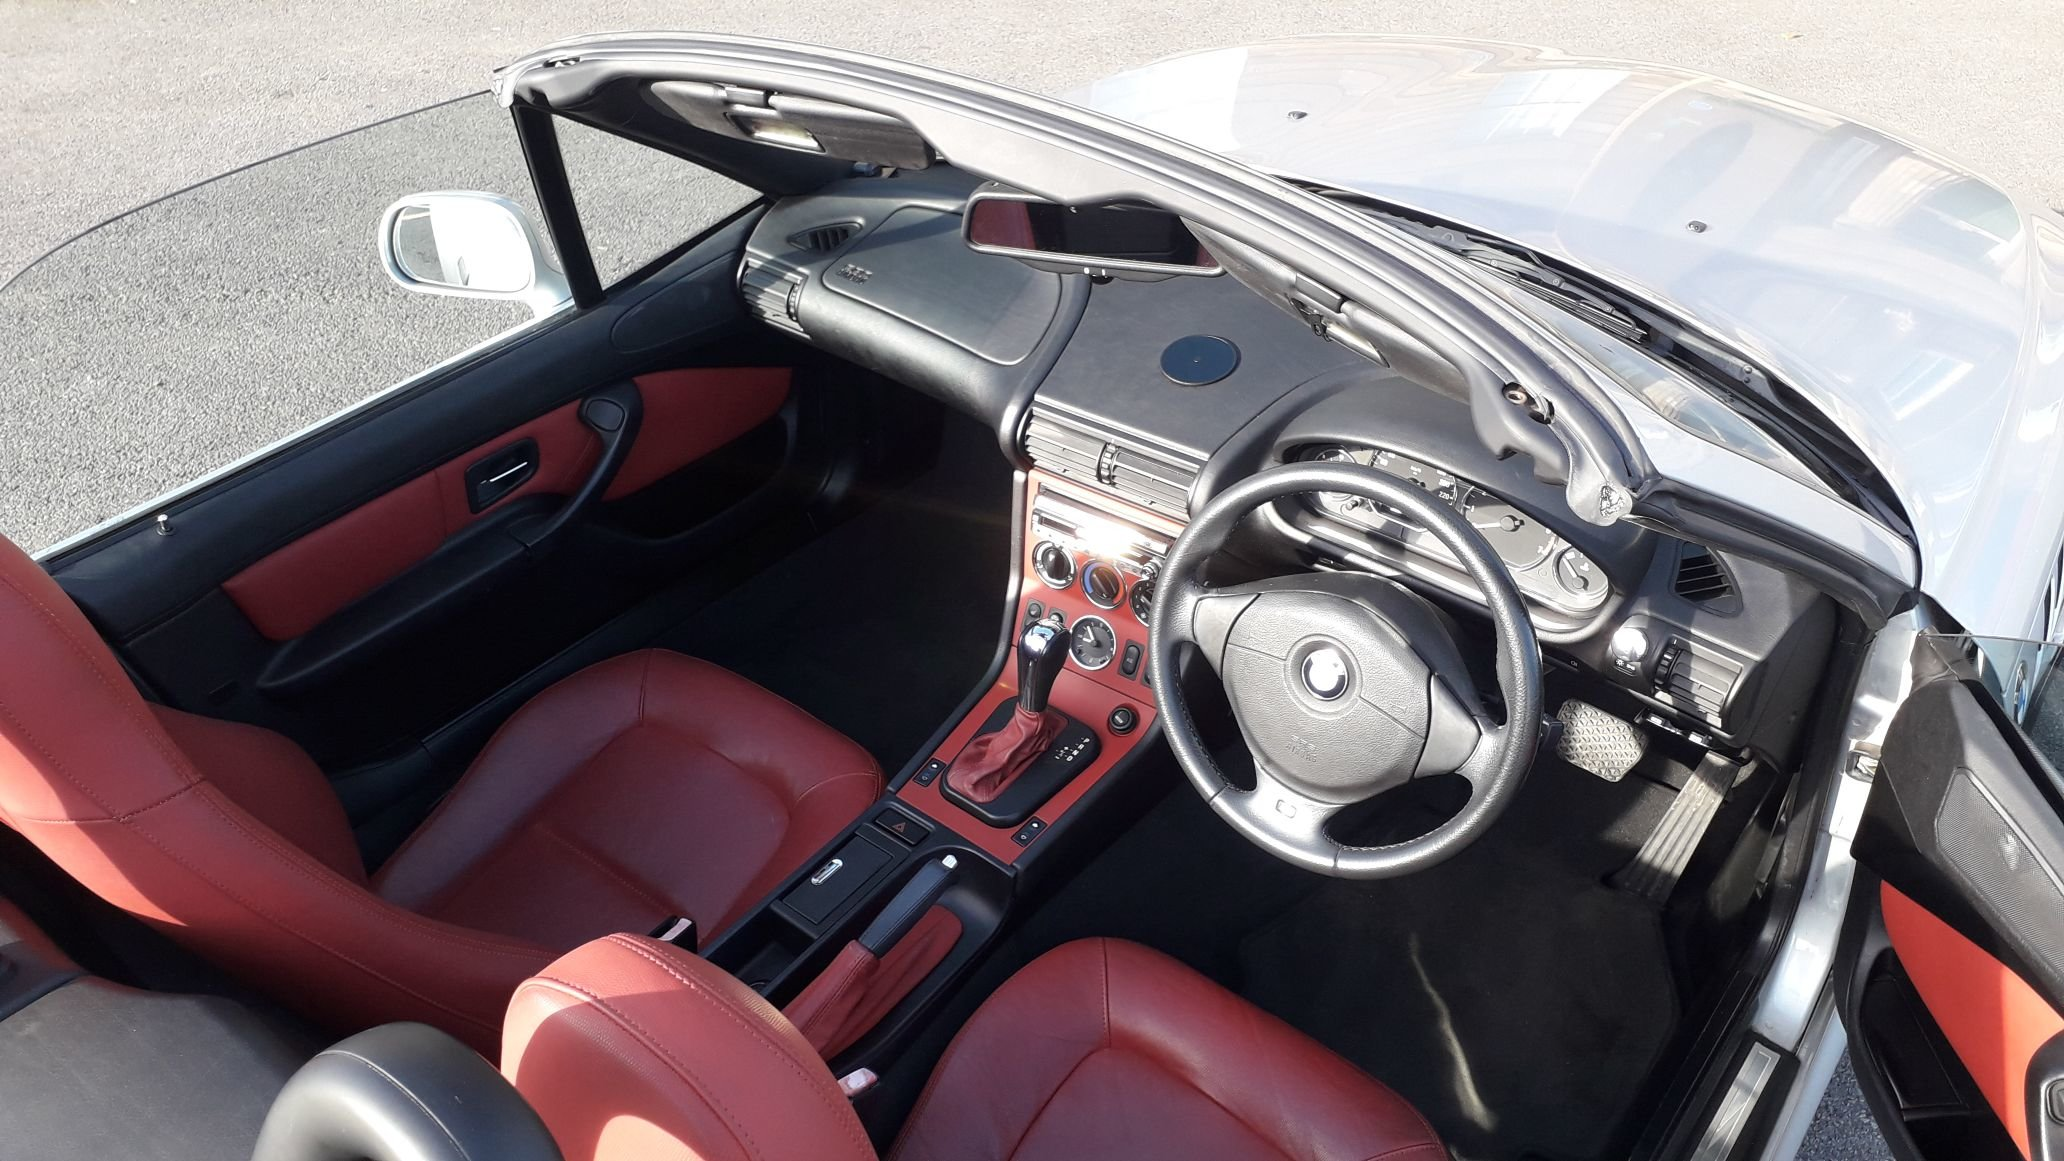 2002 BMW Z3 2.2 JAPANESE IMPORT - UK REGISTERED- LOVELY CONDITION SOLD (picture 4 of 6)